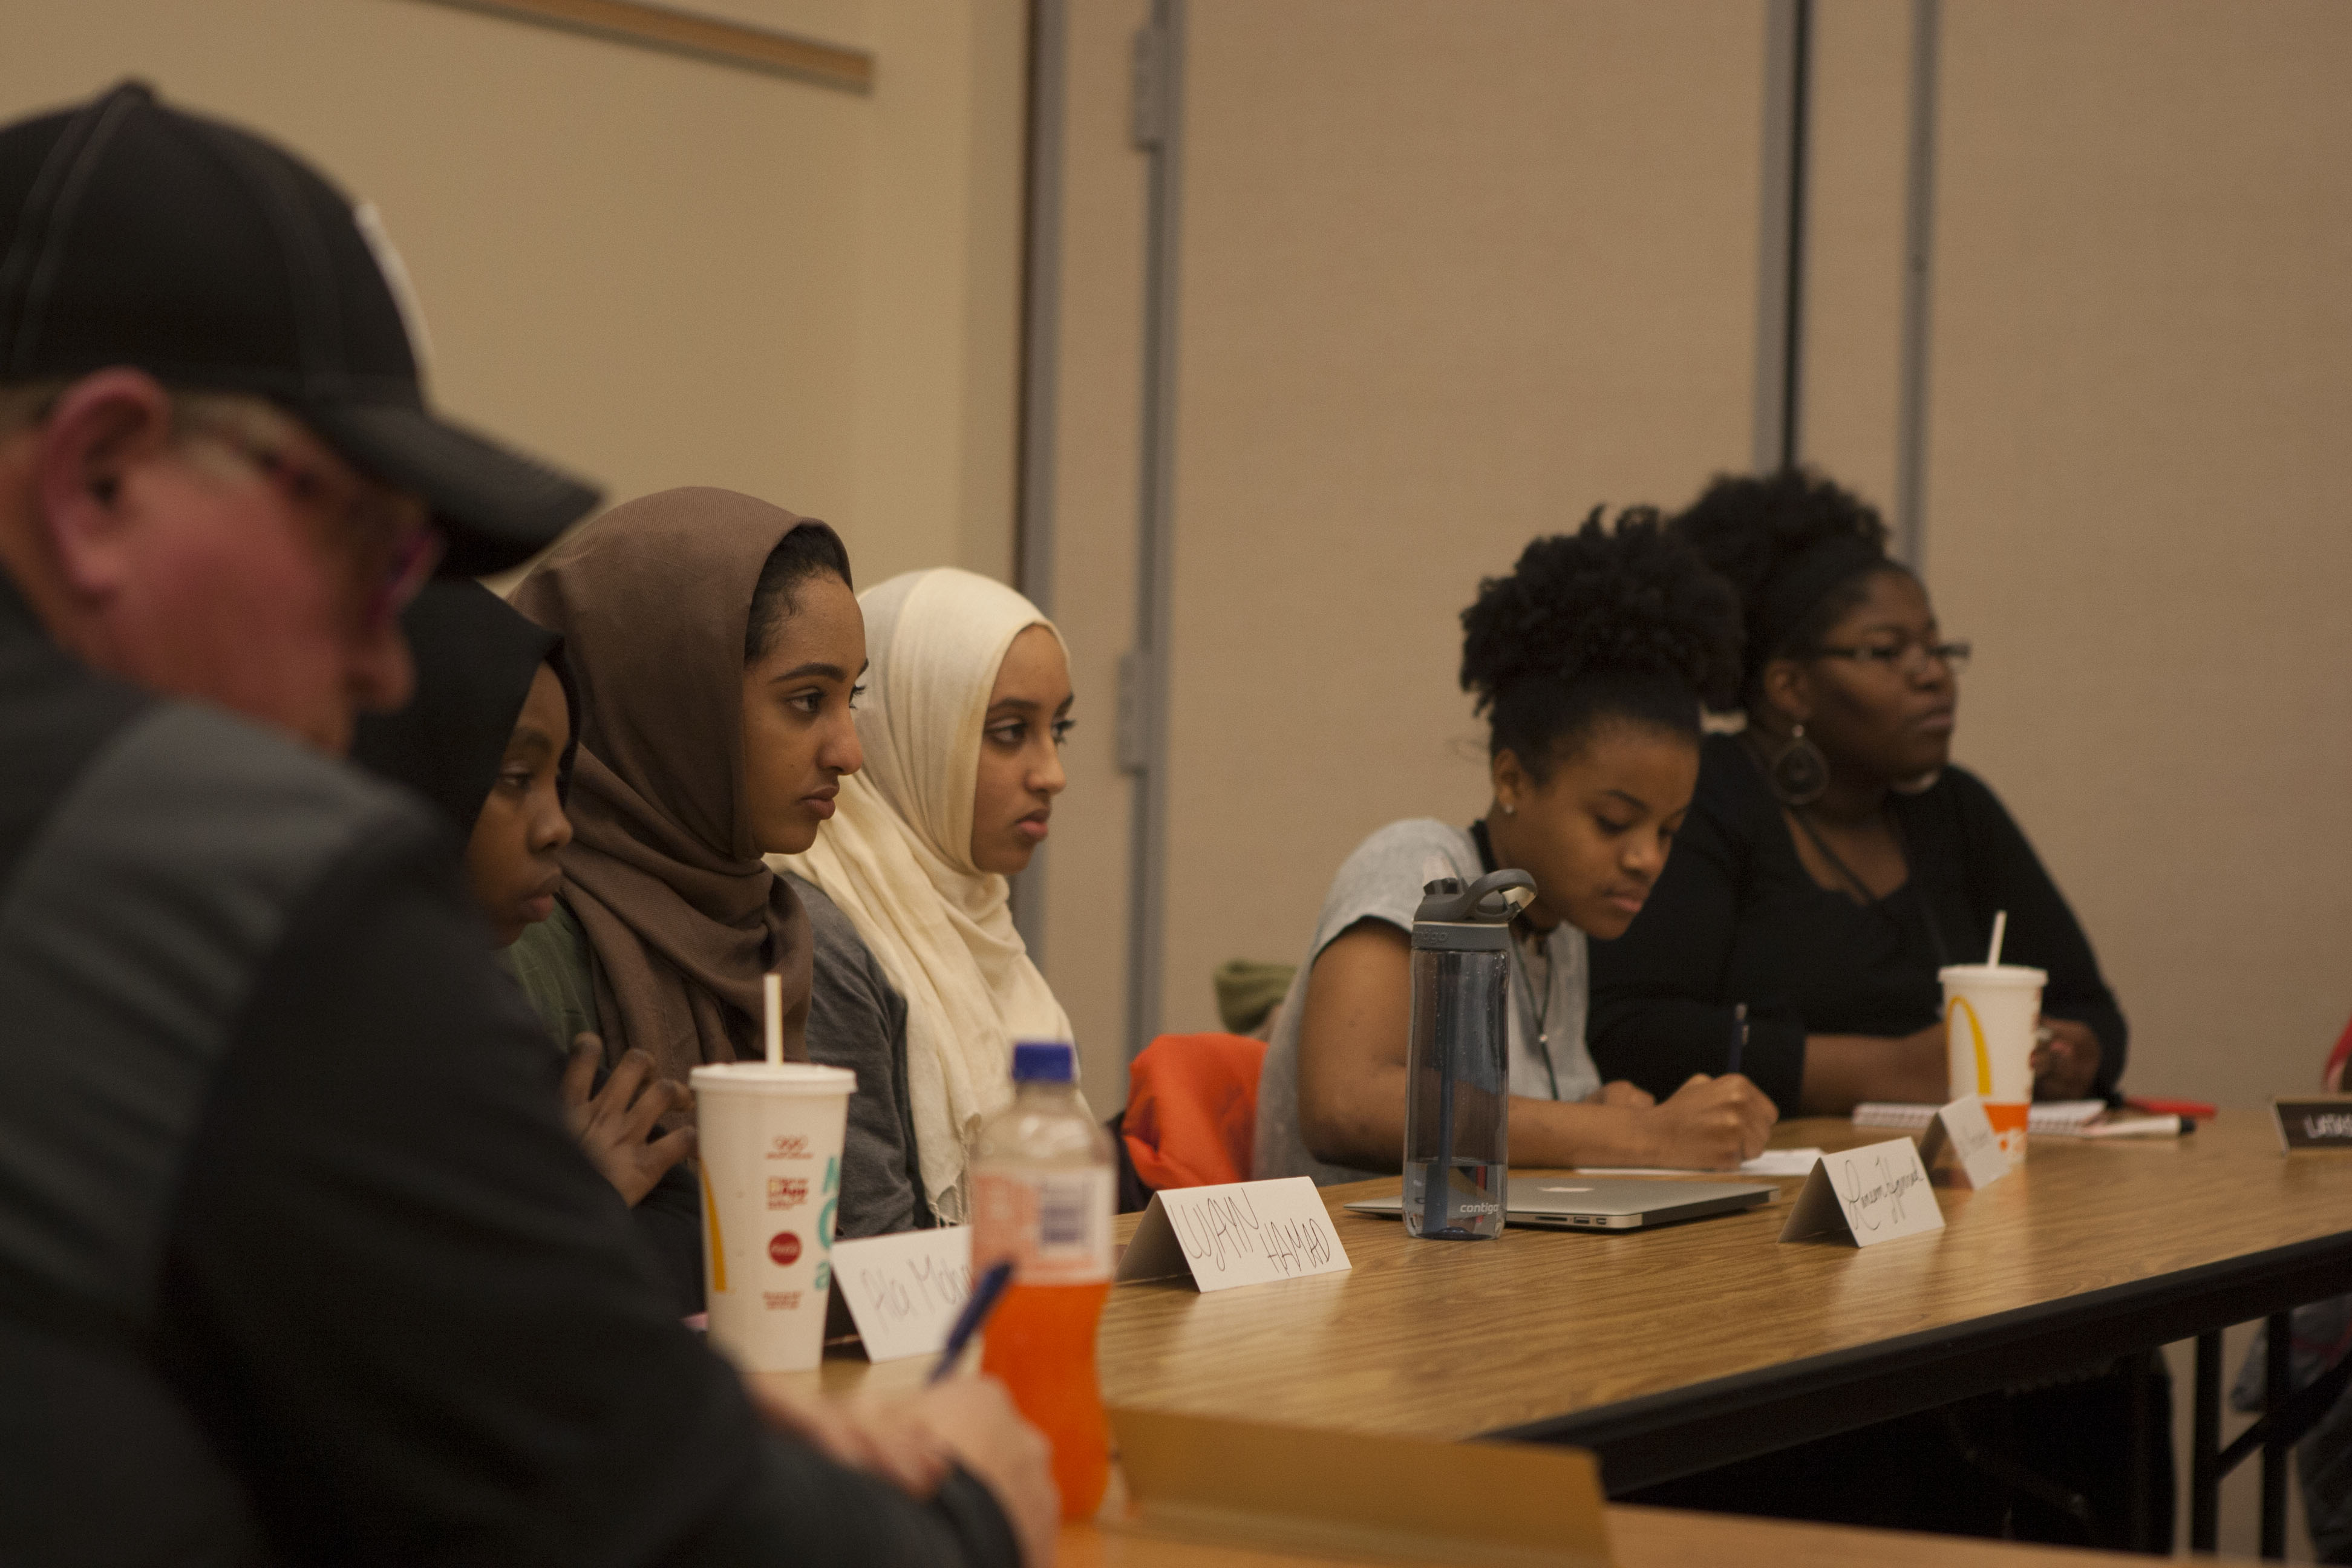 West High students listen to a member of the school board.